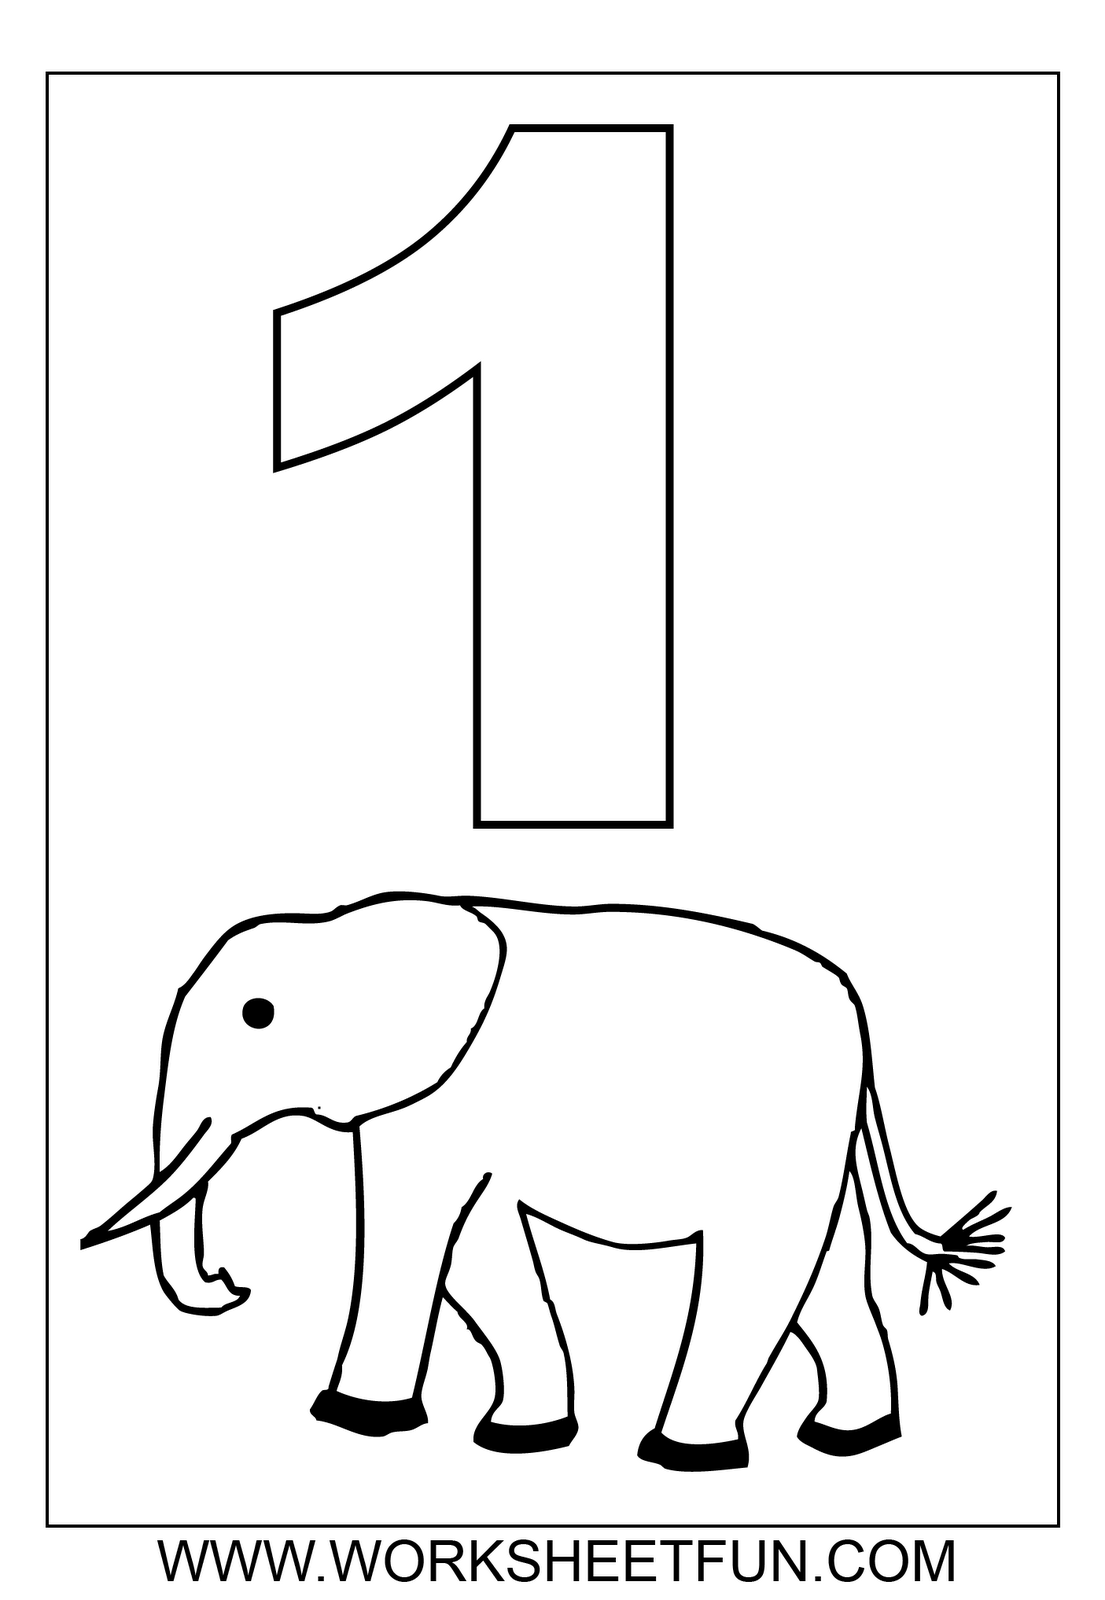 Number 1 ( One ) Tracing And Coloring Worksheets